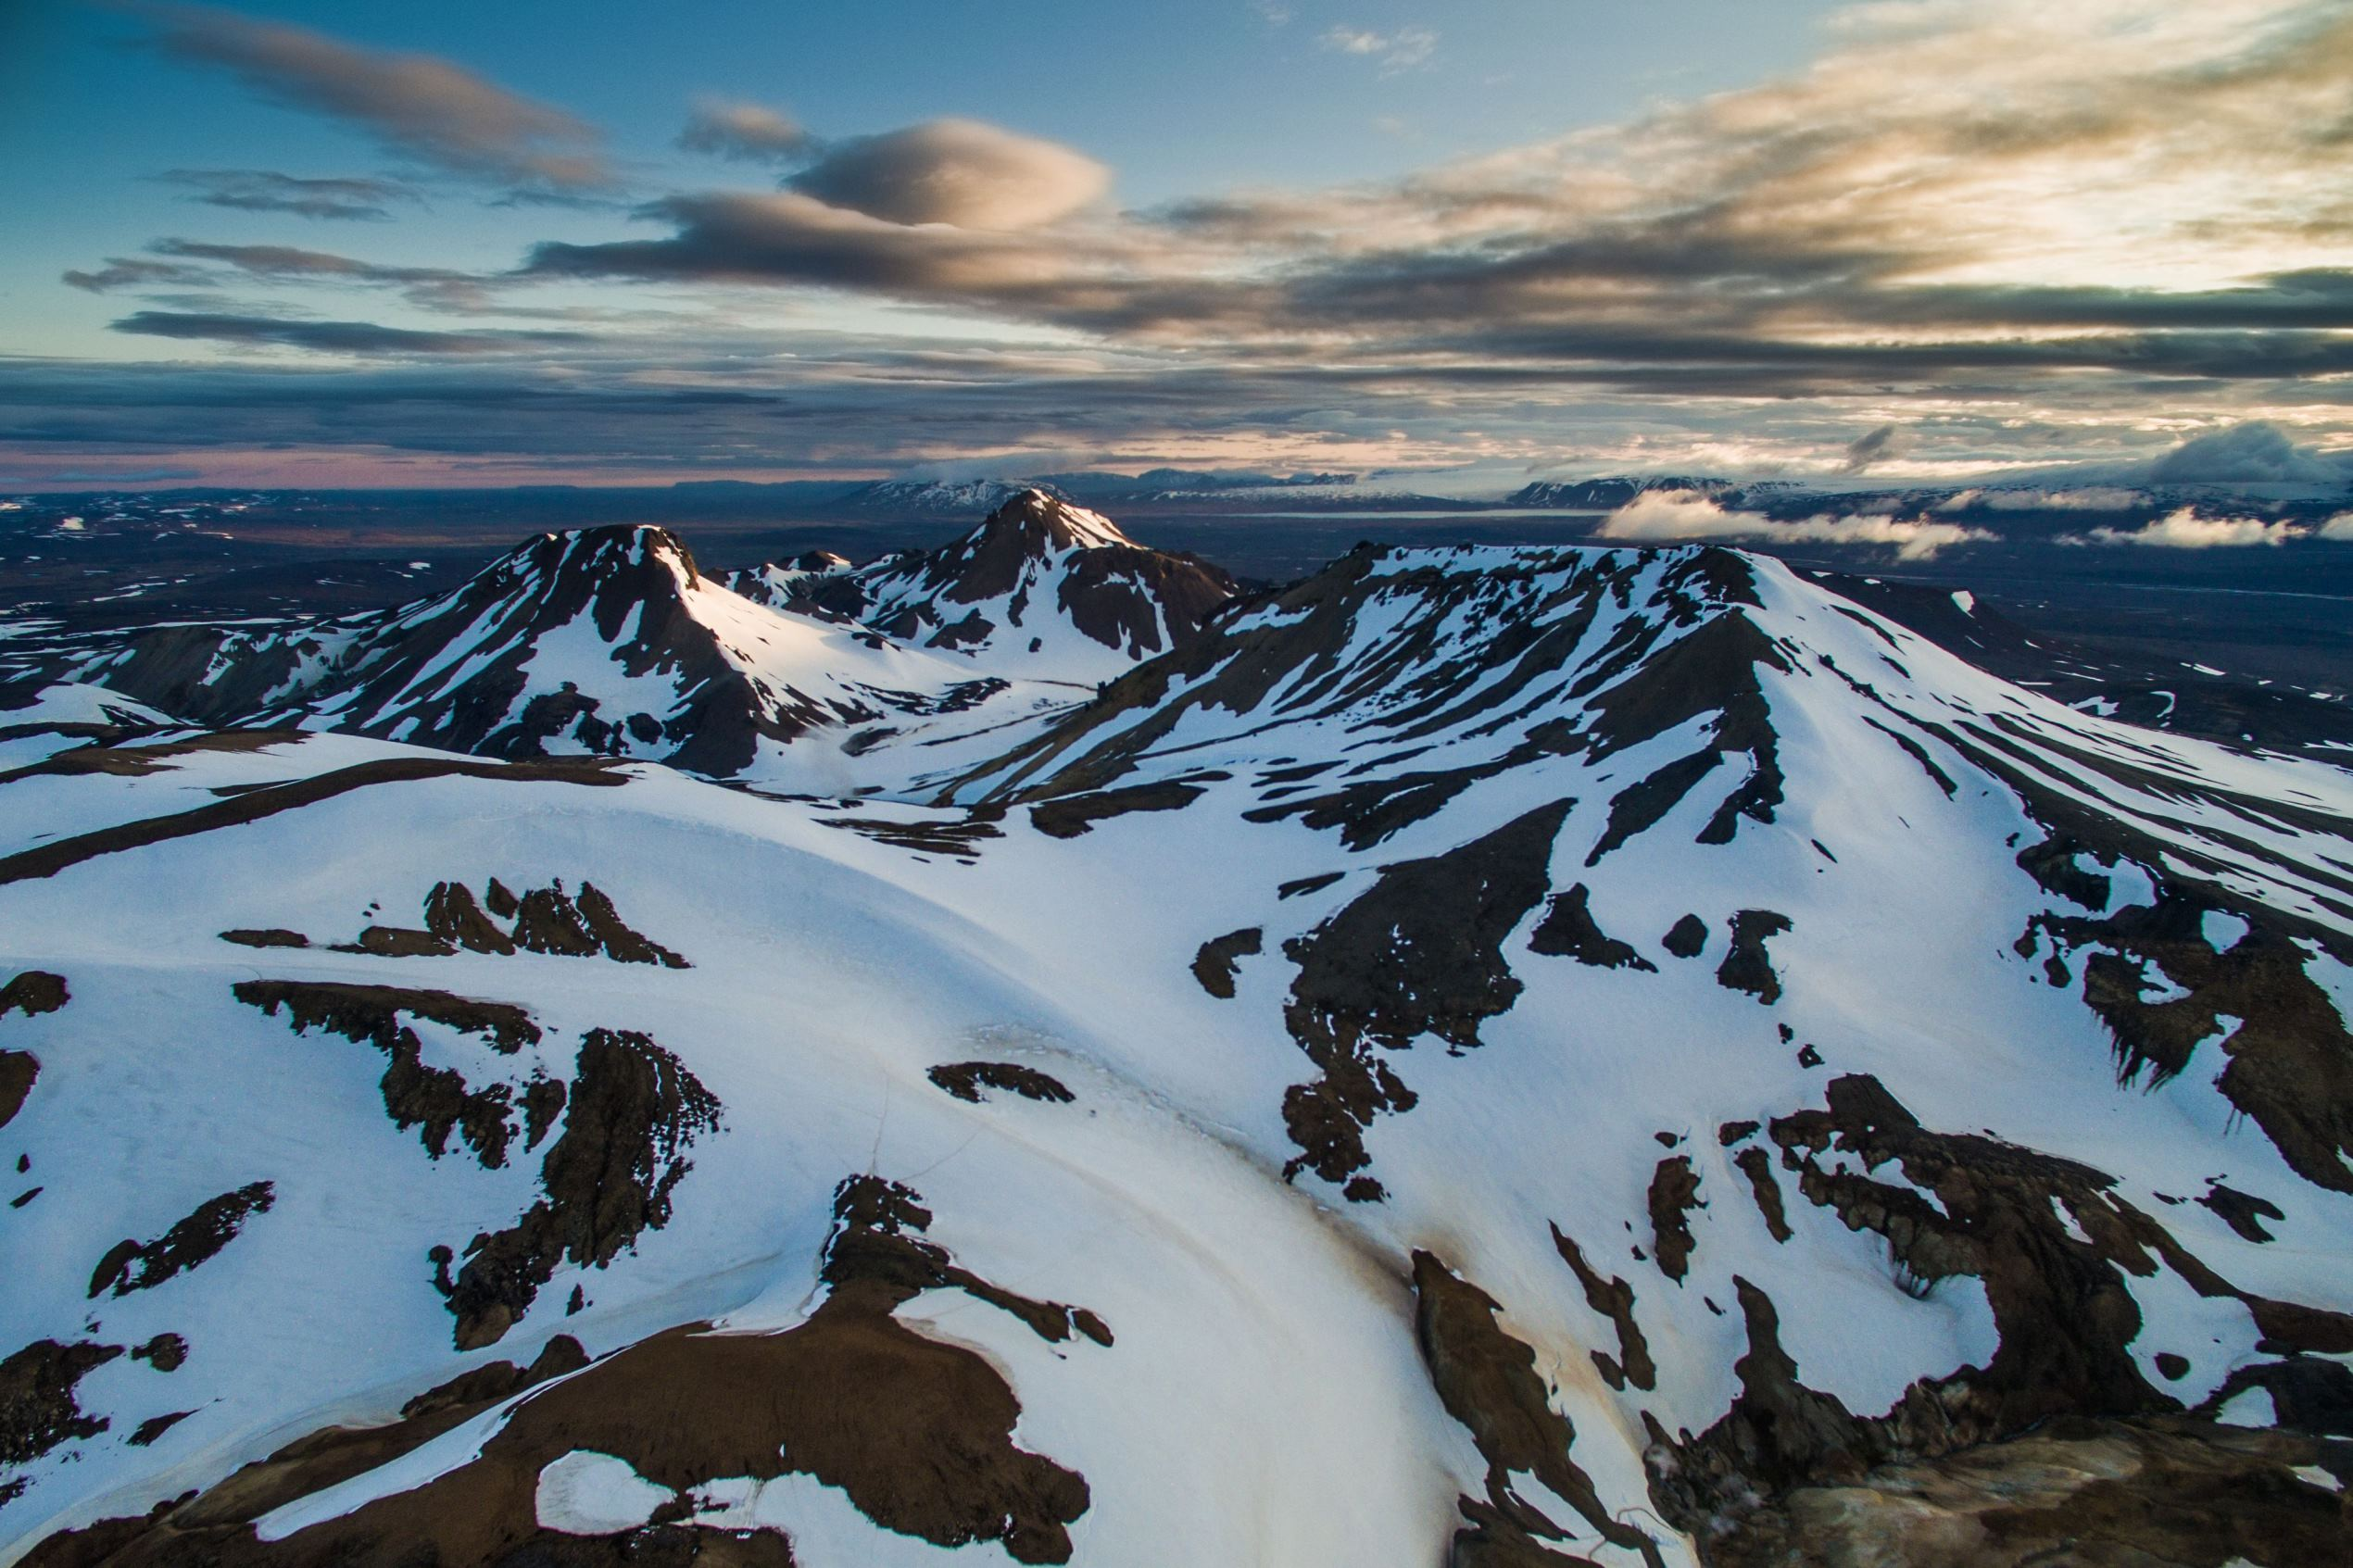 Slide 45 of 100: Incredible drone photos of Iceland - Aug 2015 Kerlingarfjöll, Iceland